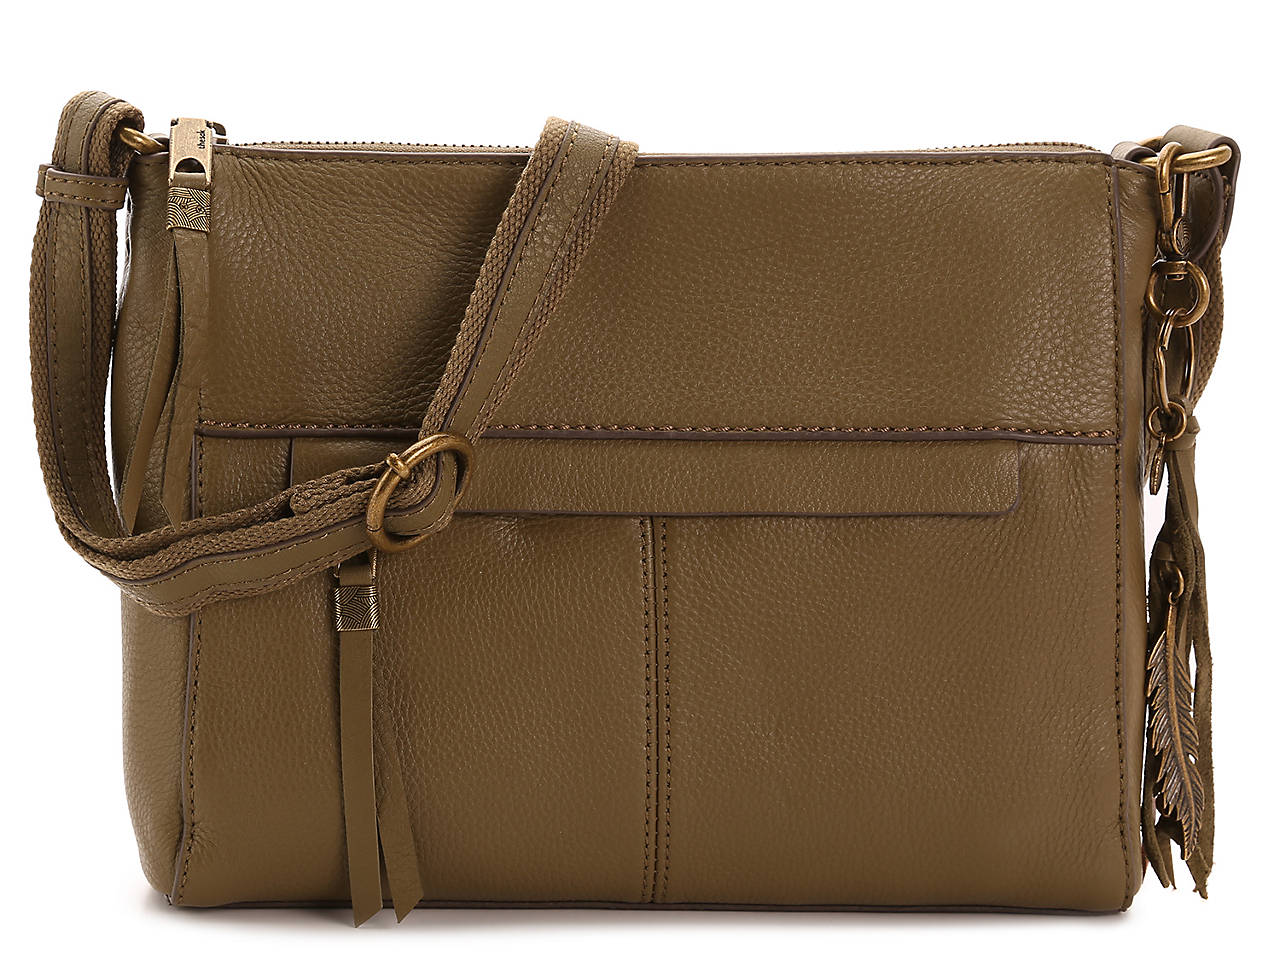 Alameda Leather Crossbody Bag